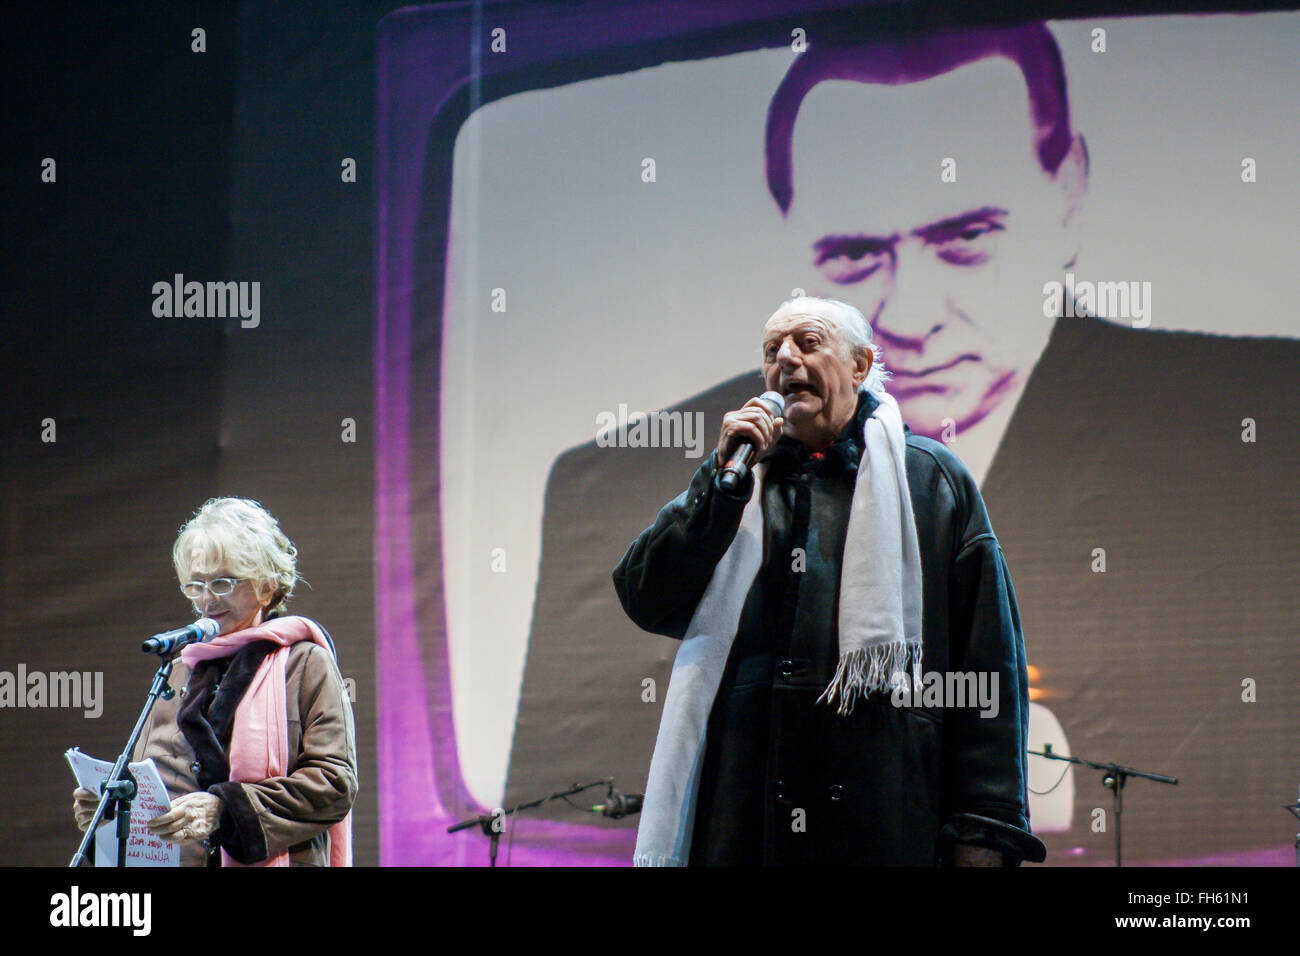 Dario Fo and Franca Rame during a NO B day in Roma (No Berlusconi Day) - Stock Image